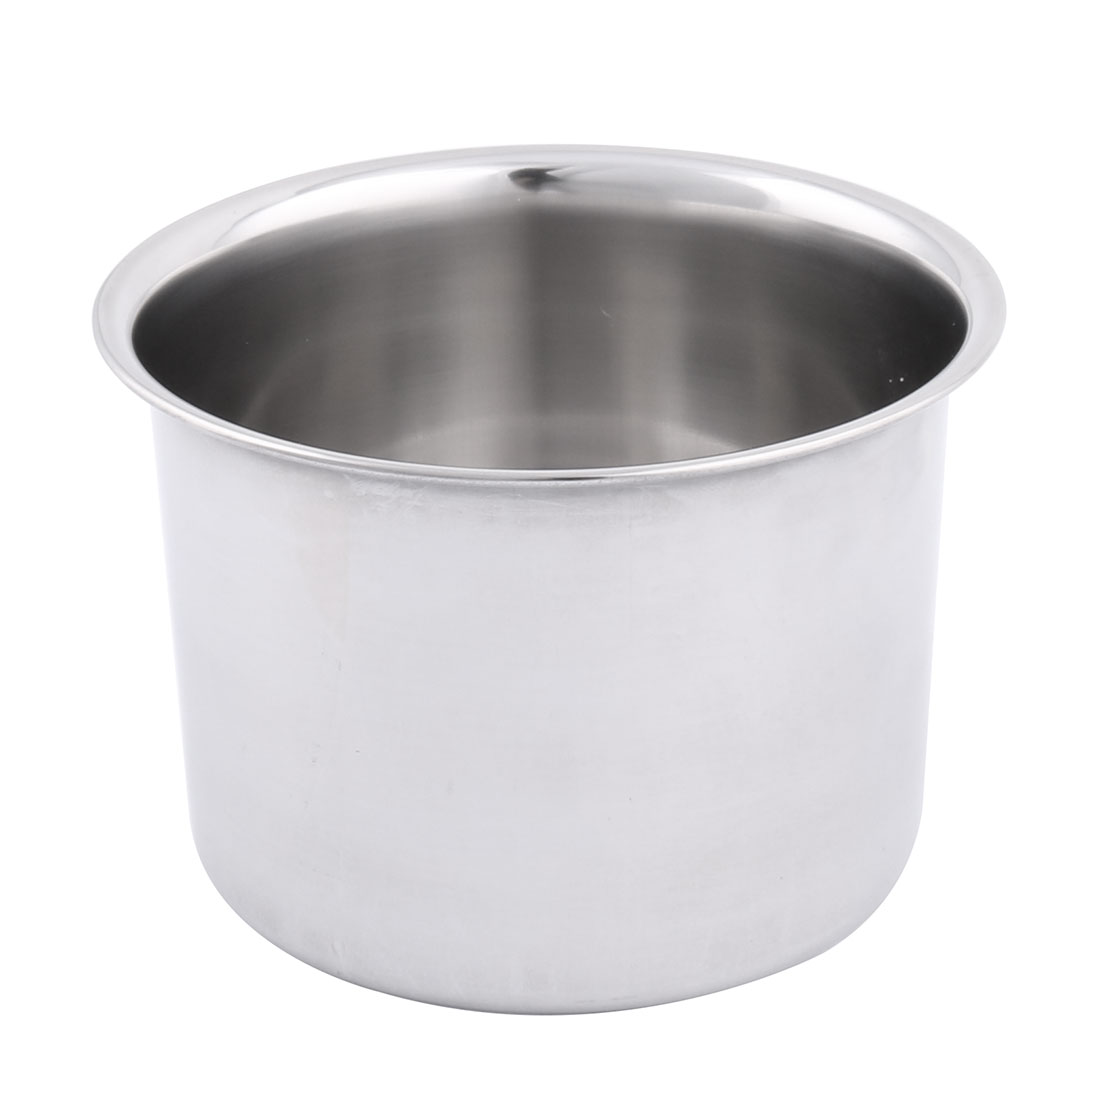 Household Stainless Steel Round Shaped Soup Water Multifuction Kitchen Bowl Container 14cm Dia